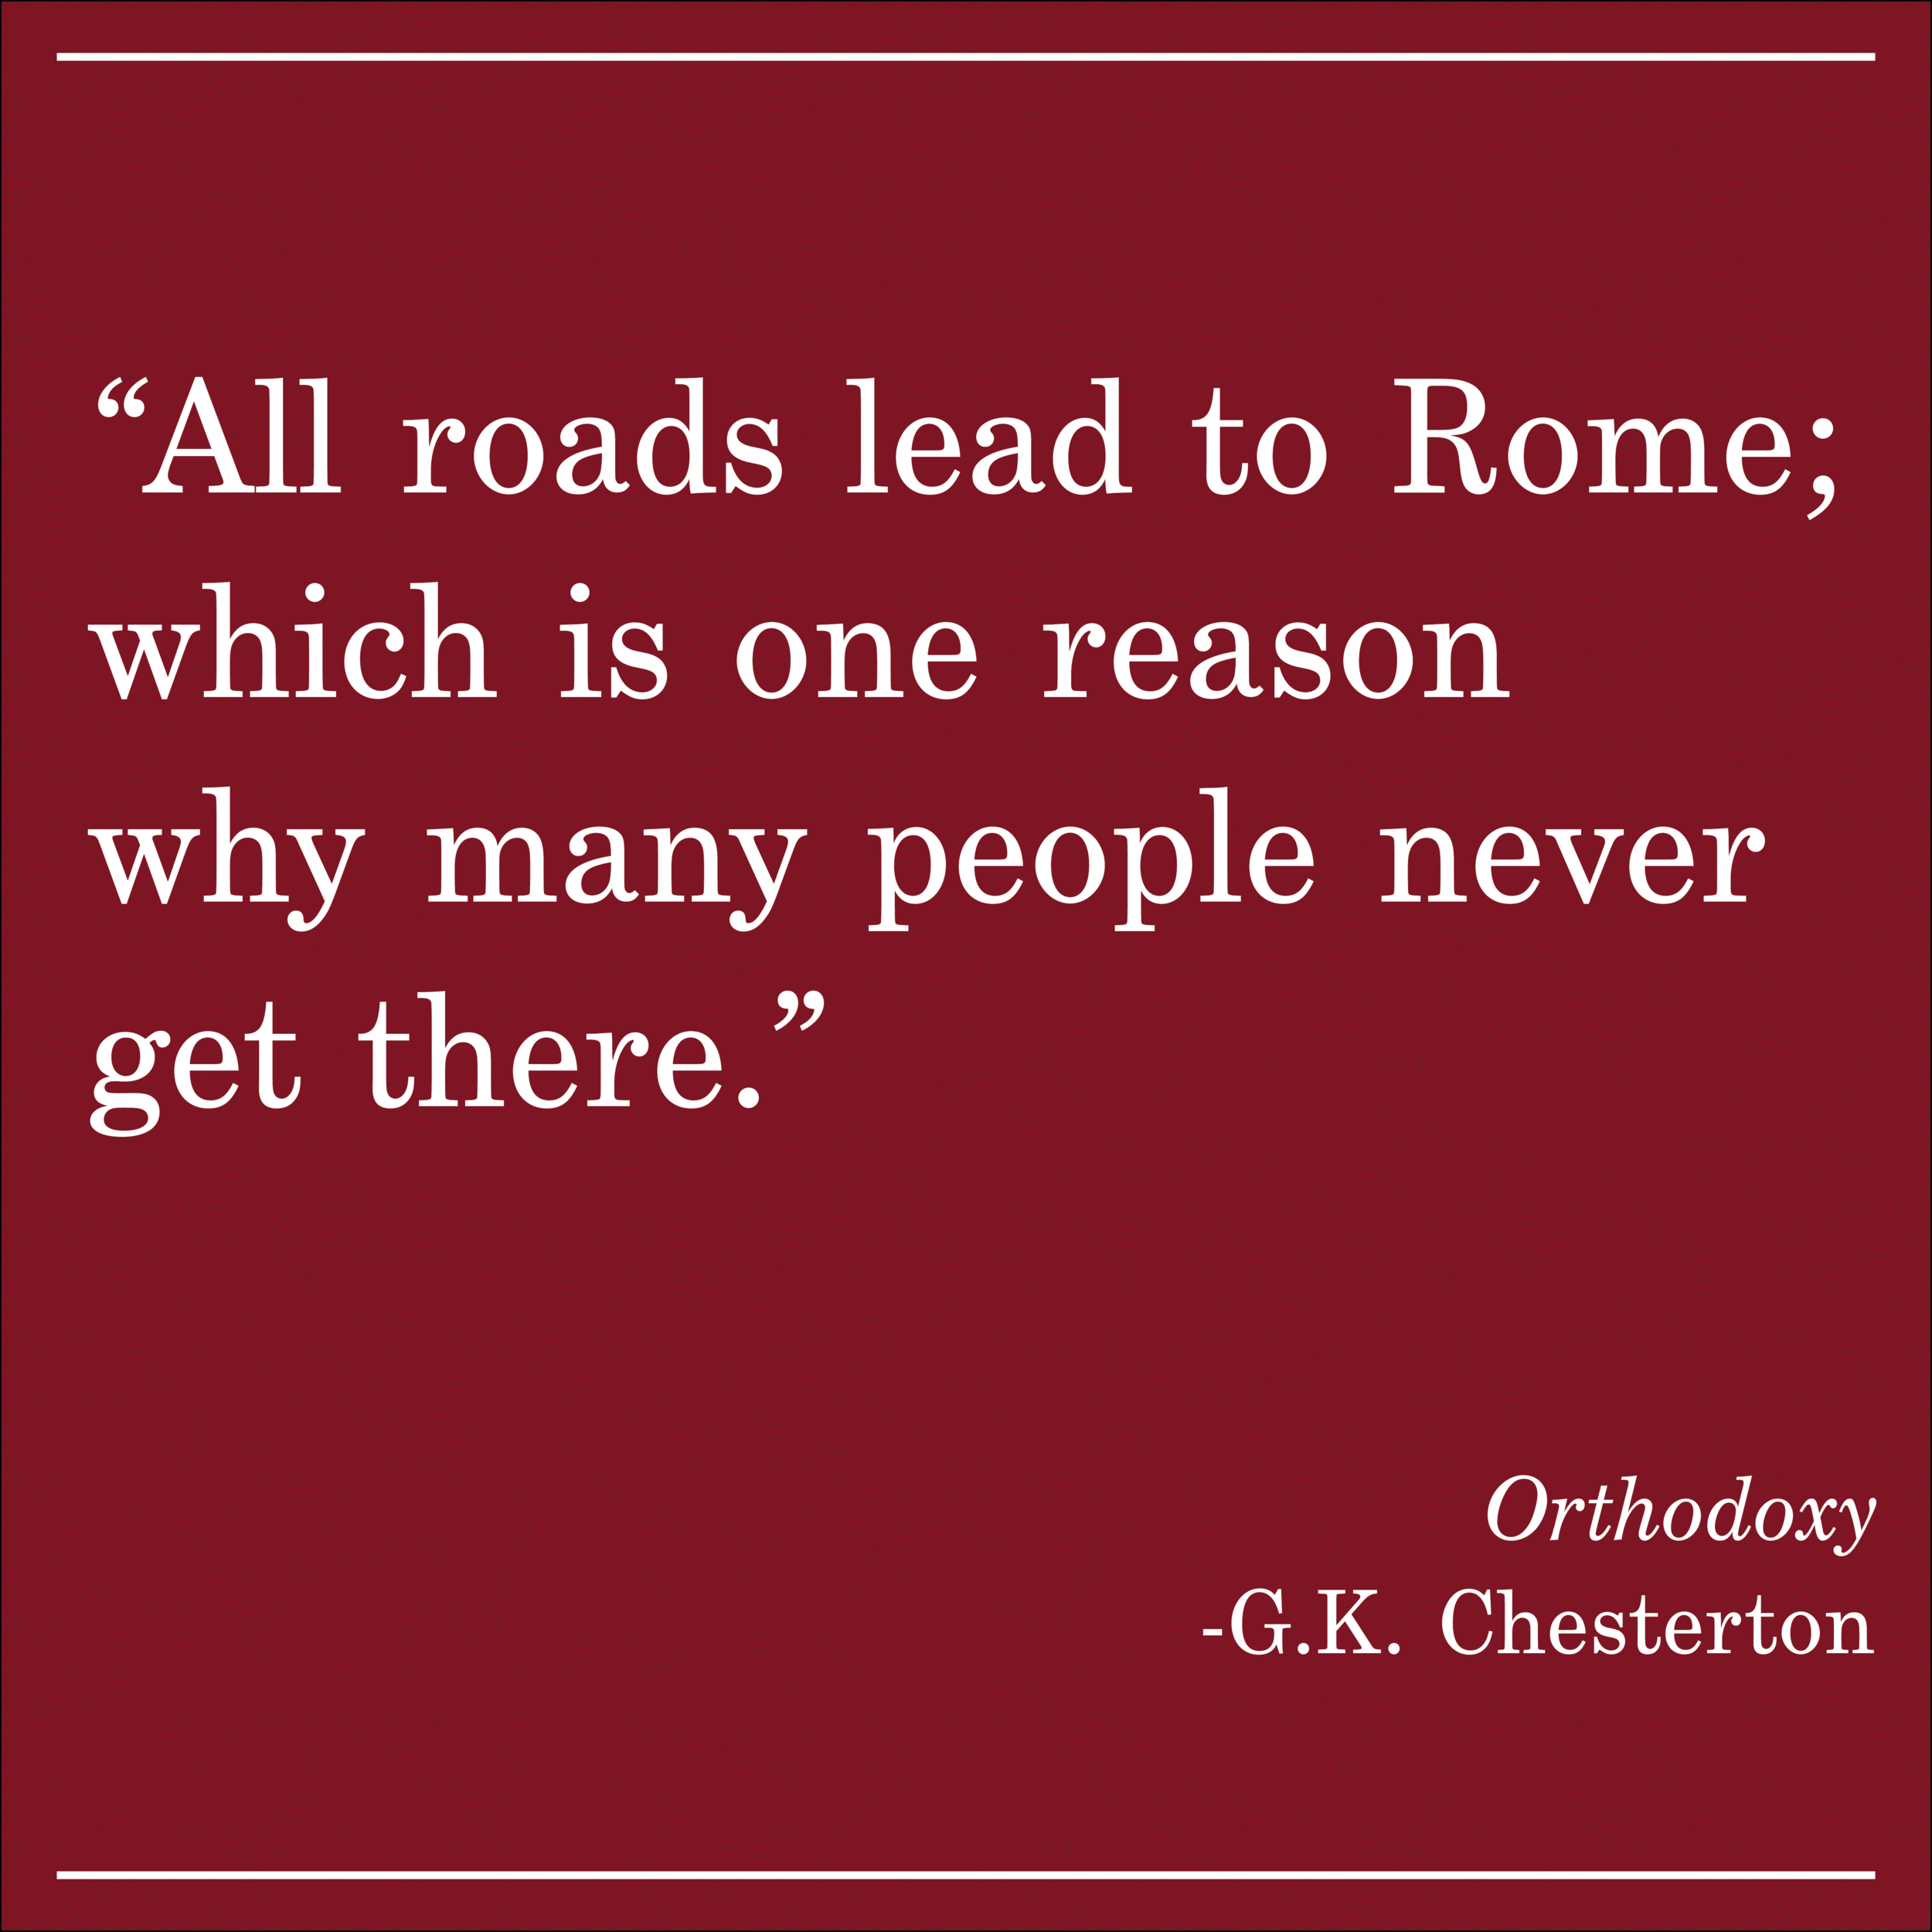 Daily Quote Orthodoxy by GK Chesterton